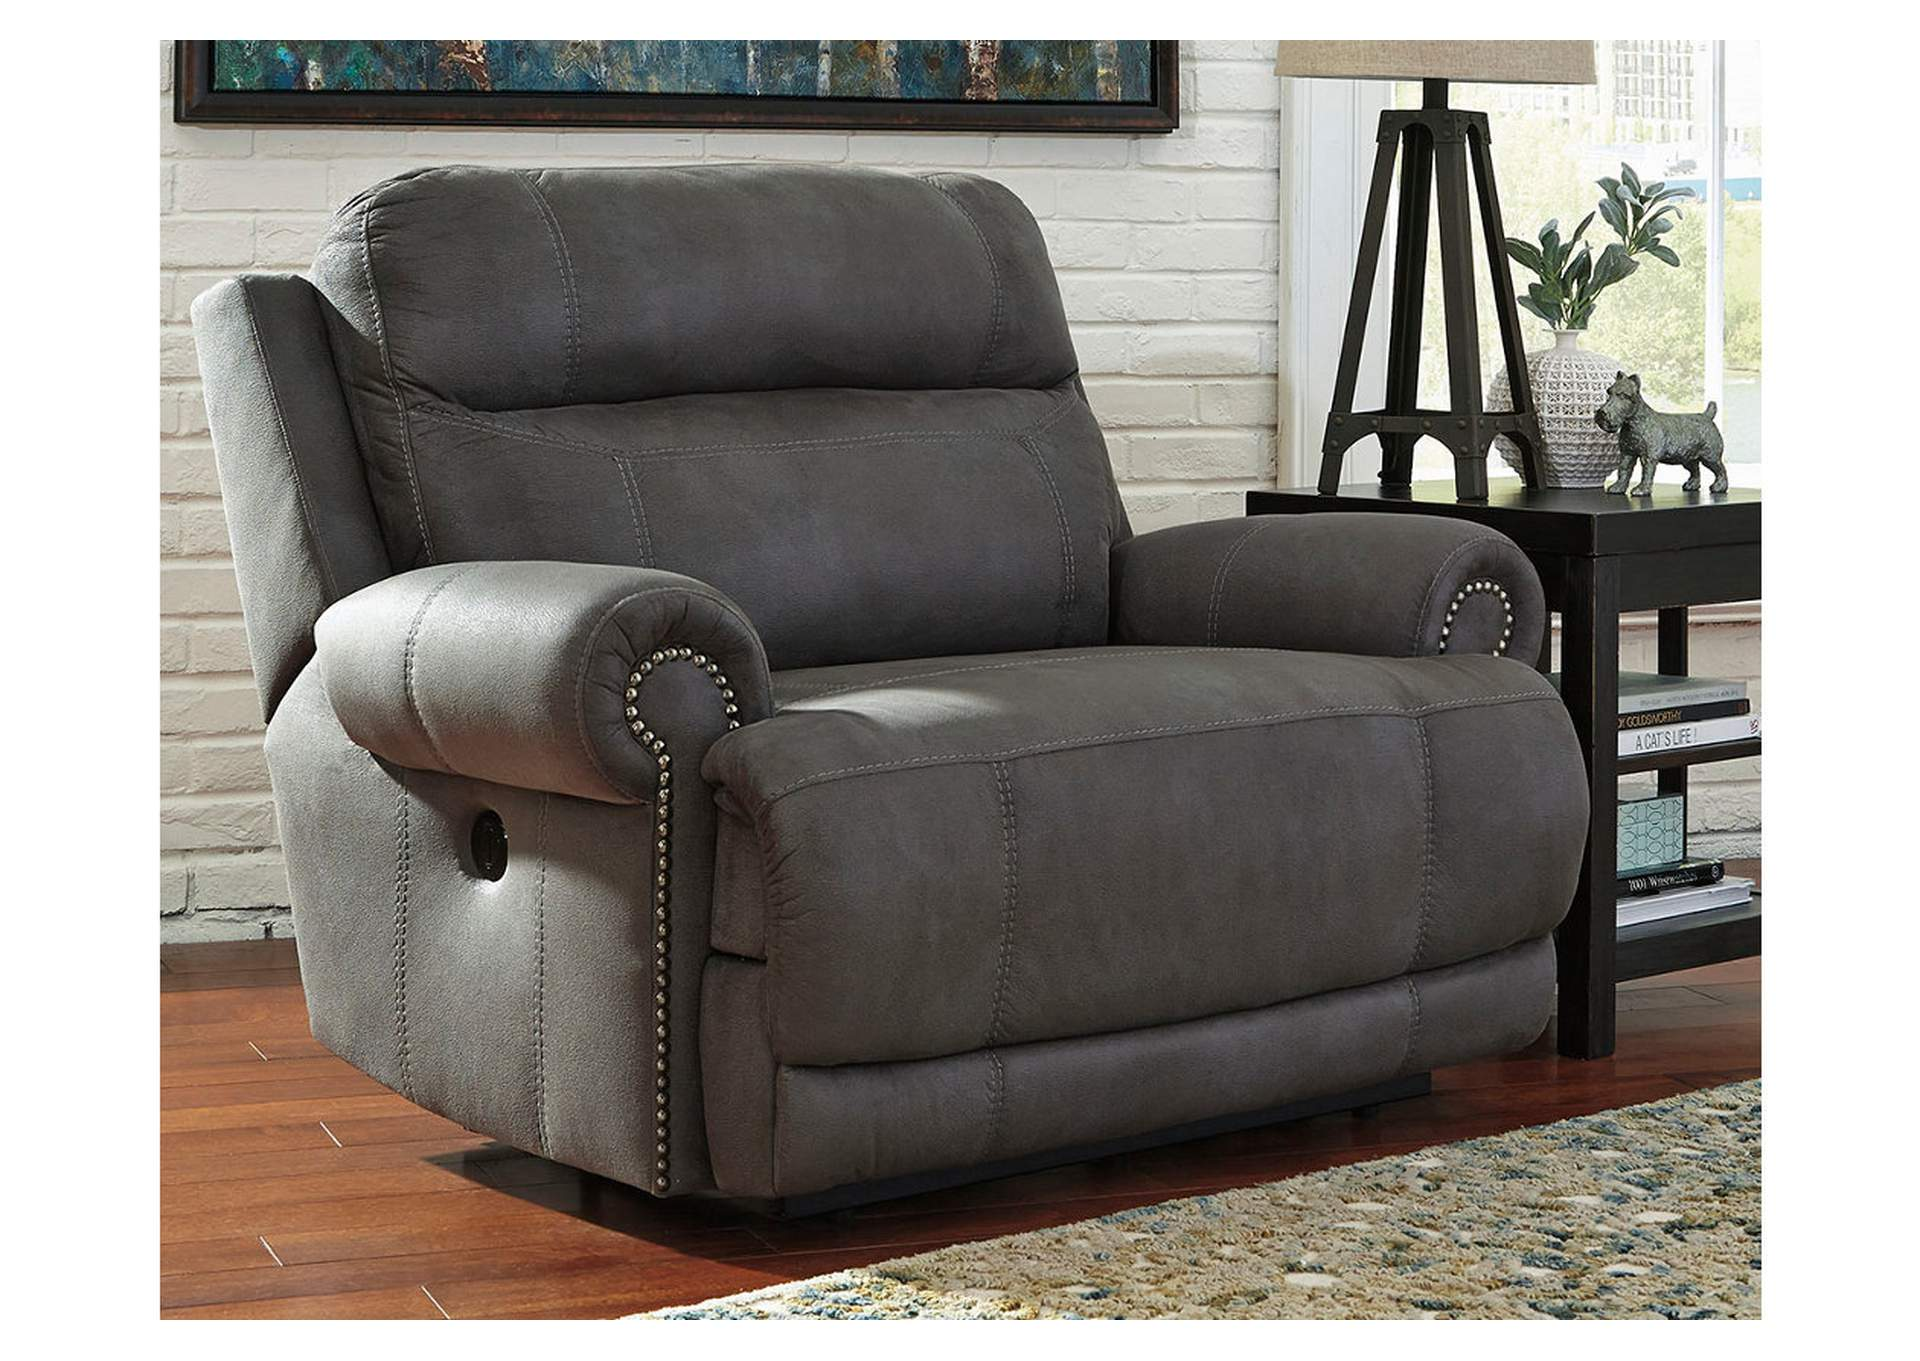 Austere Gray Zero Wall Power Wide Recliner,Signature Design By Ashley